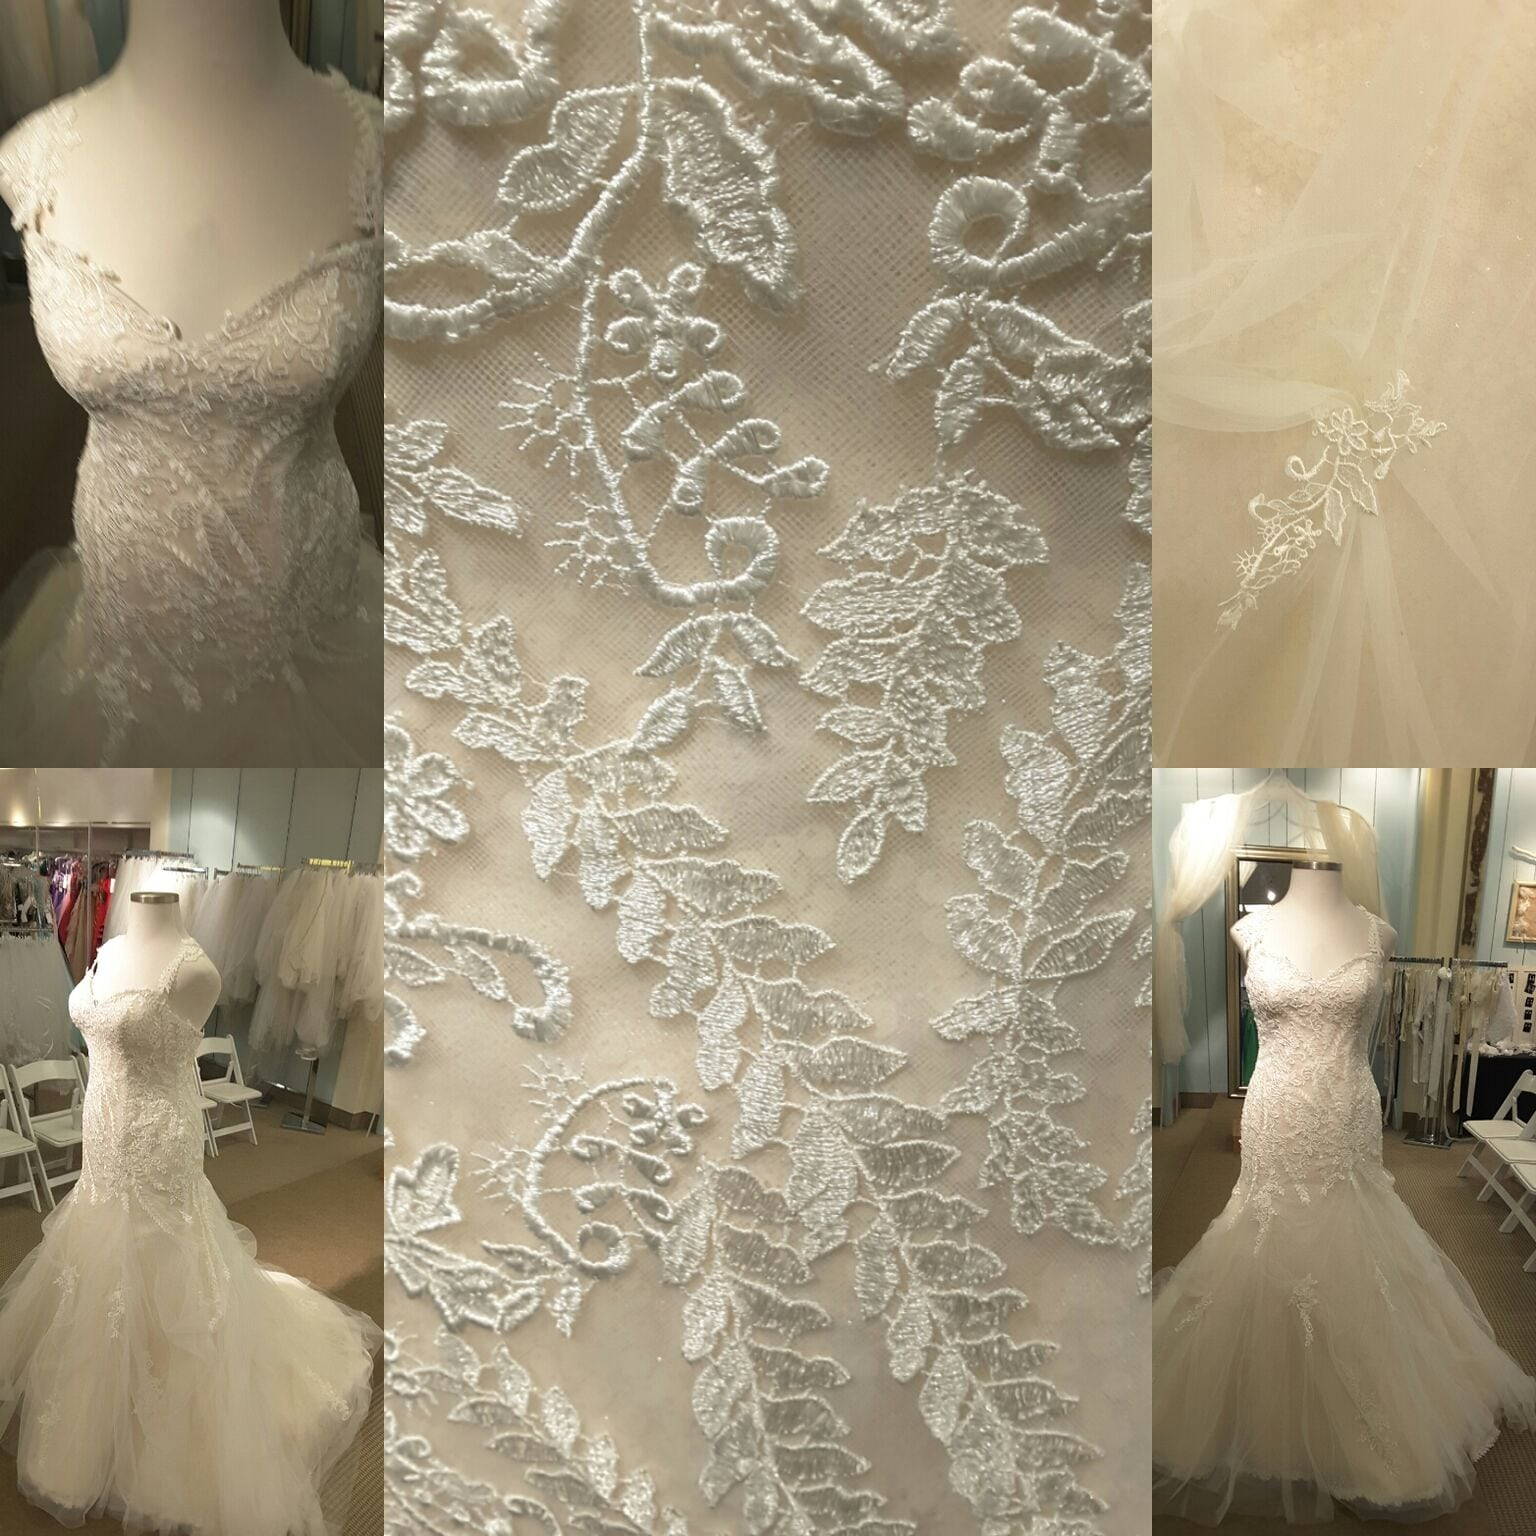 Wedding Dress Shops Knoxville Tn: The Gilded Gown - Knoxville TN - Store Pic 5